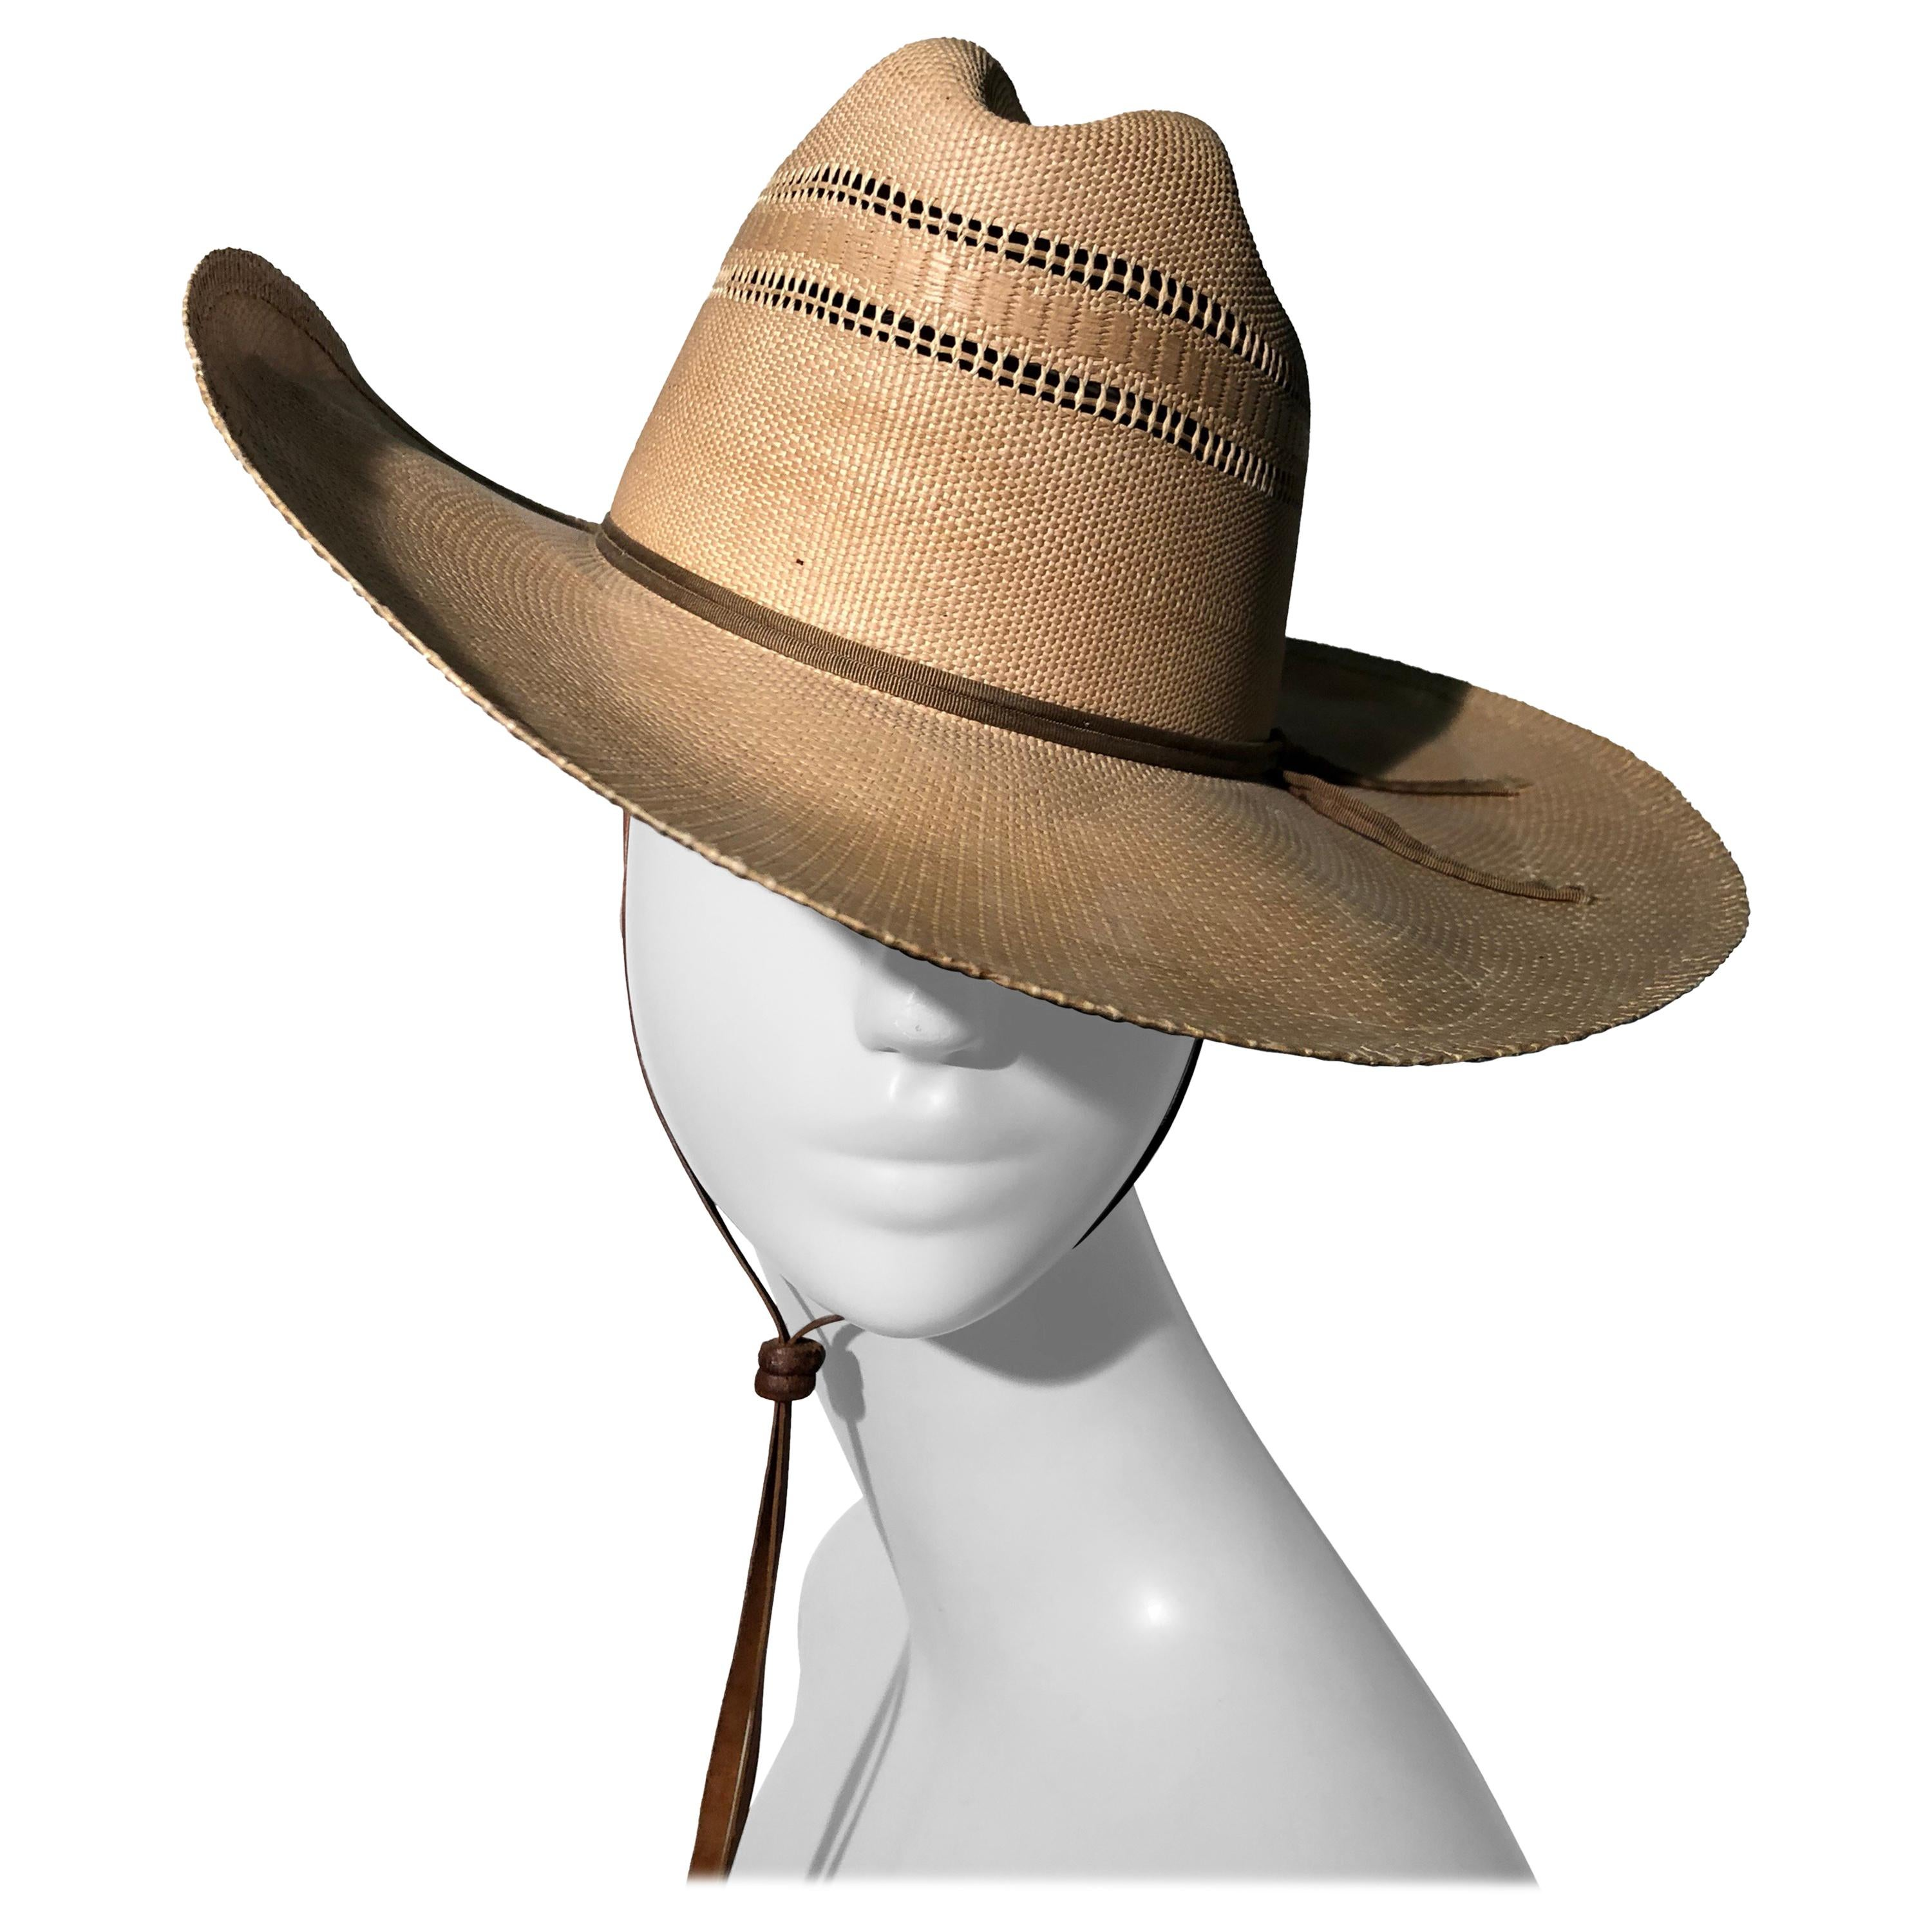 1950s Resistol Woven Straw Cowboy Western Hat W/ Leather Chin Strap